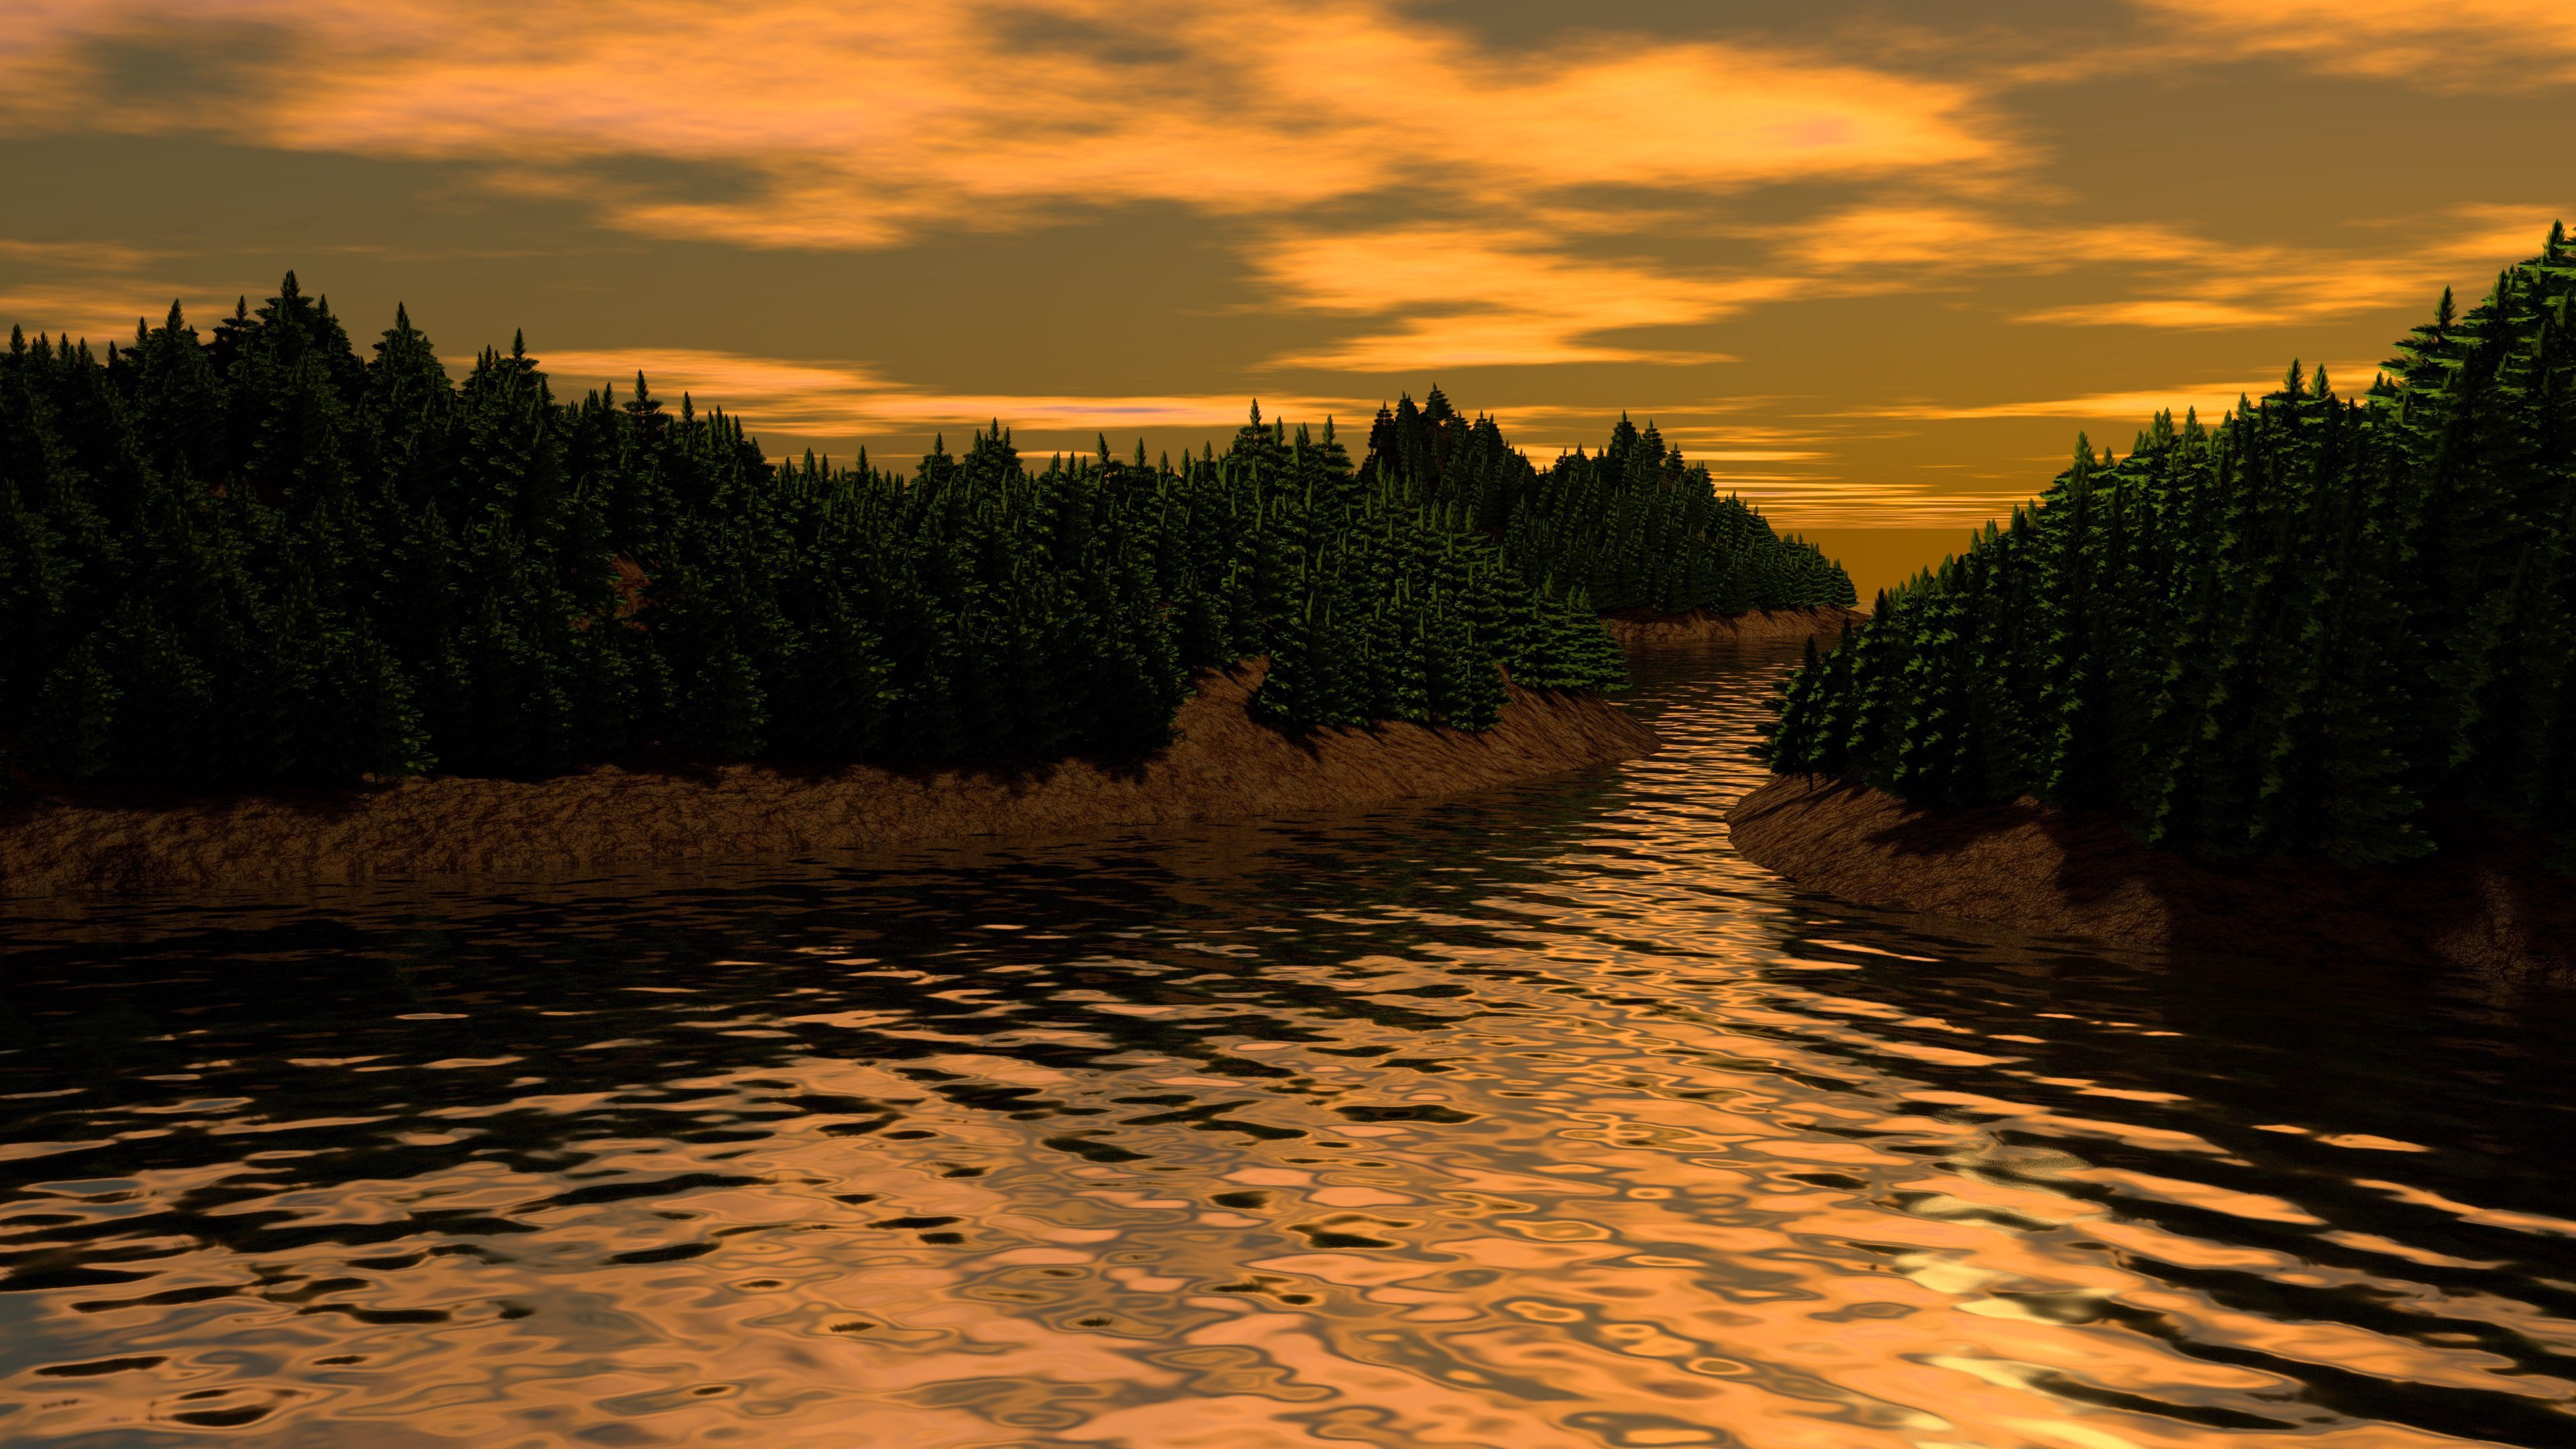 68400 download wallpaper 3D, Art, Rivers, Trees, Landscape screensavers and pictures for free